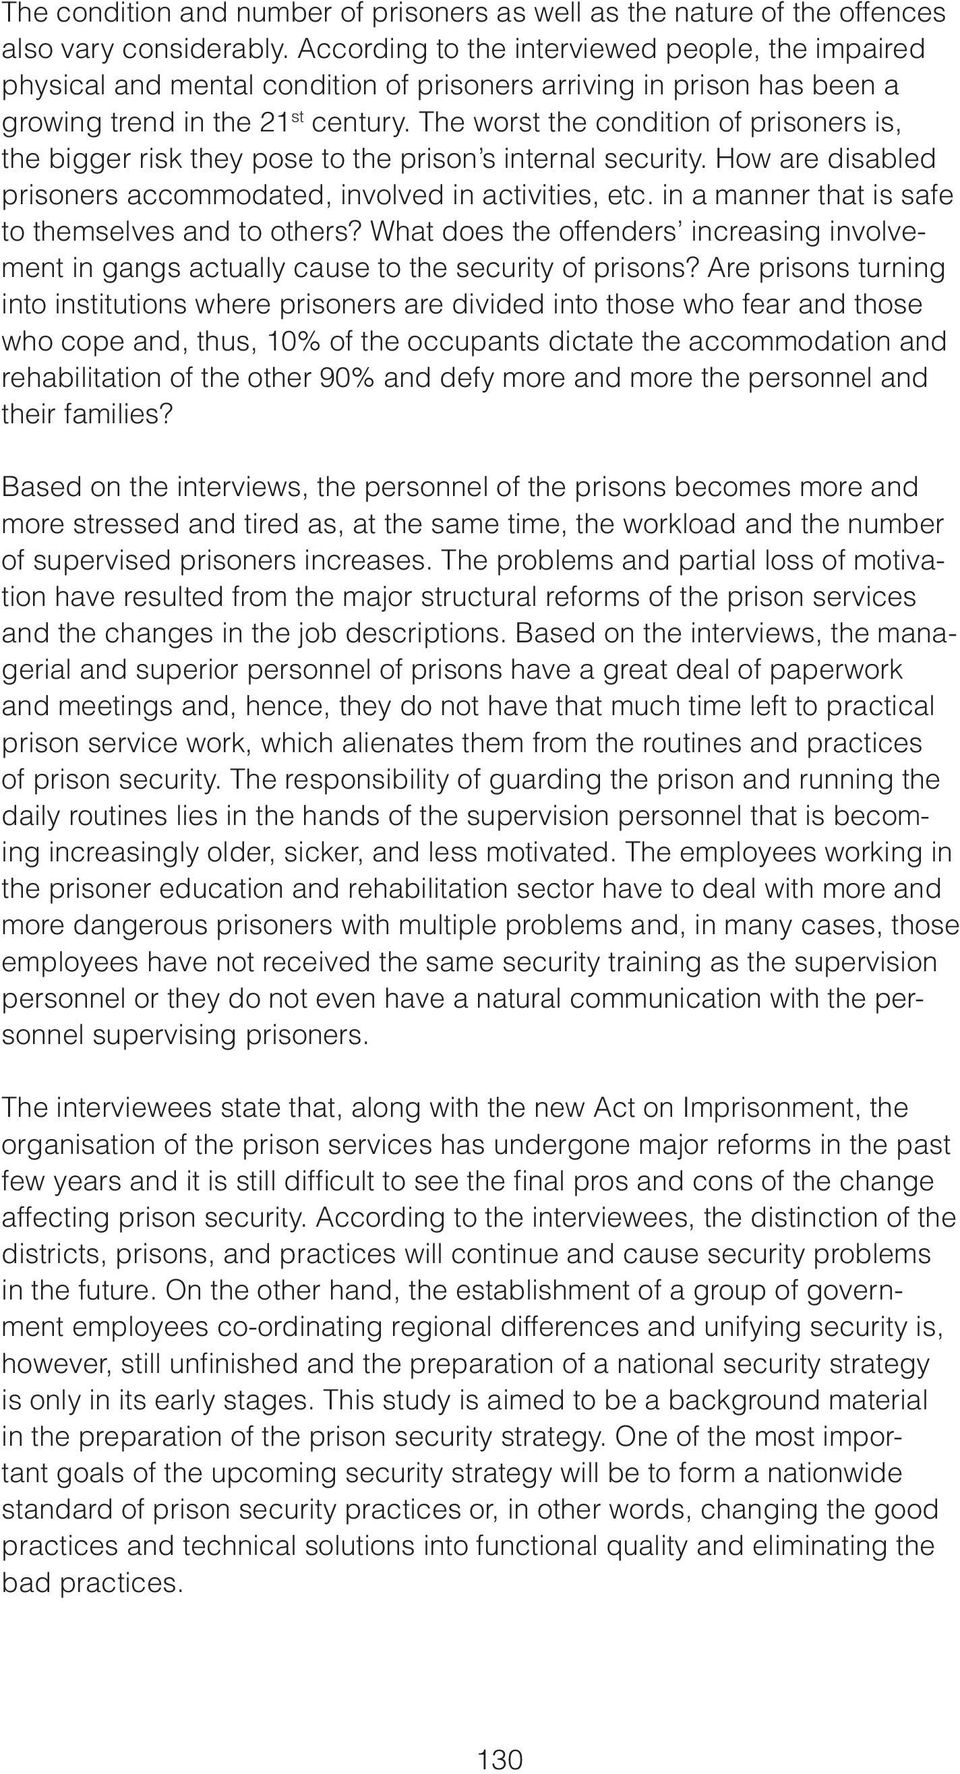 The worst the condition of prisoners is, the bigger risk they pose to the prison s internal security. How are disabled prisoners accommodated, involved in activities, etc.